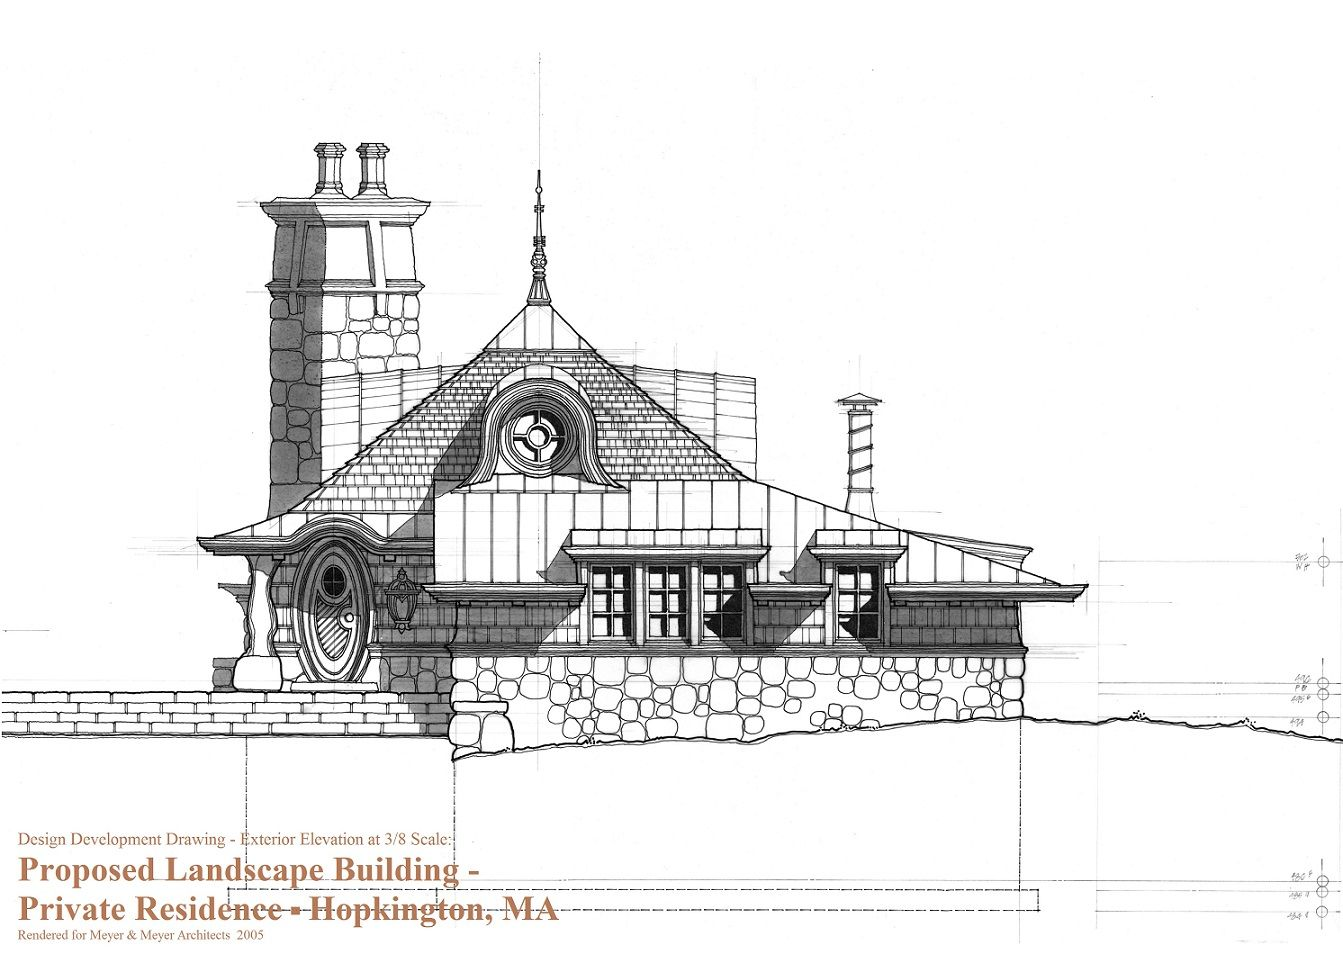 Design development elevation drawing for small cottage building in massachusetts rendered 3 8